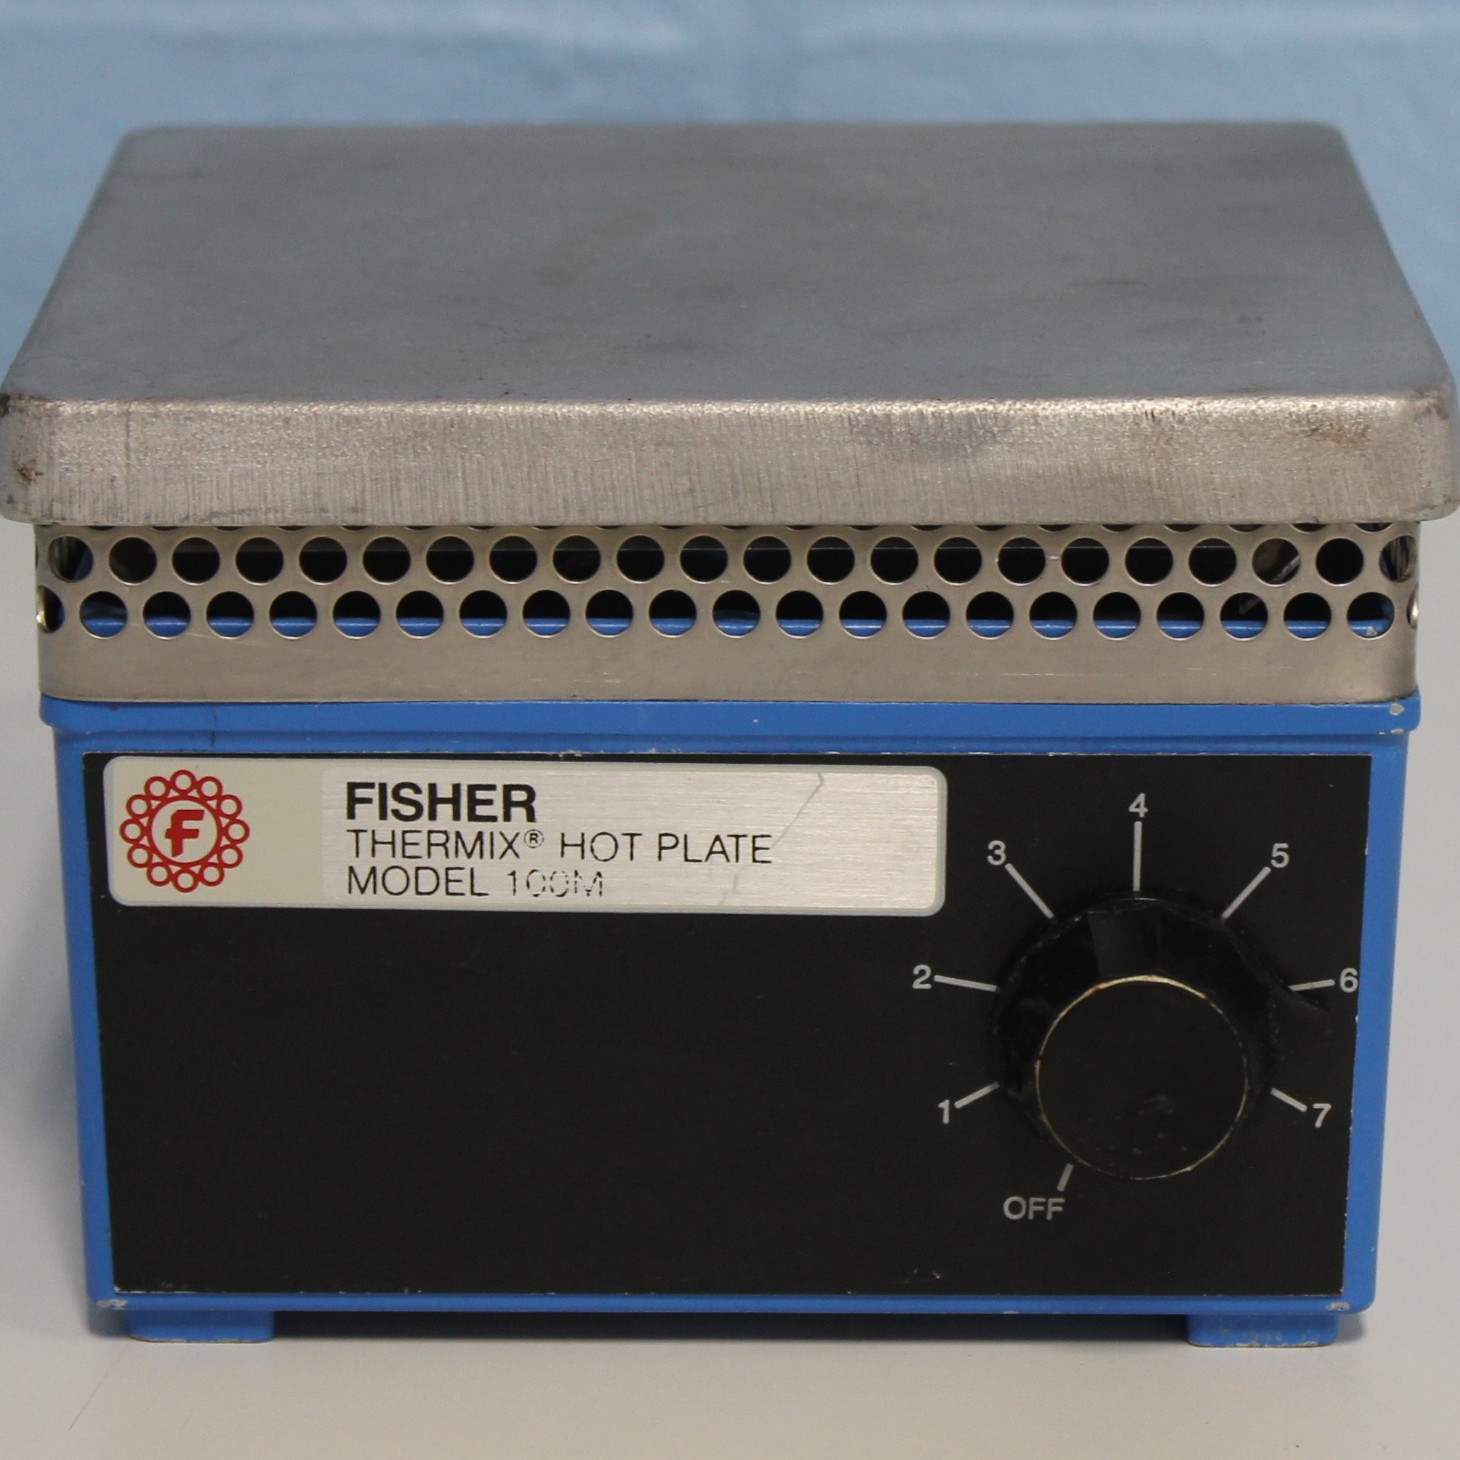 Fisher Scientific Thermix 100M Hot Plate Image